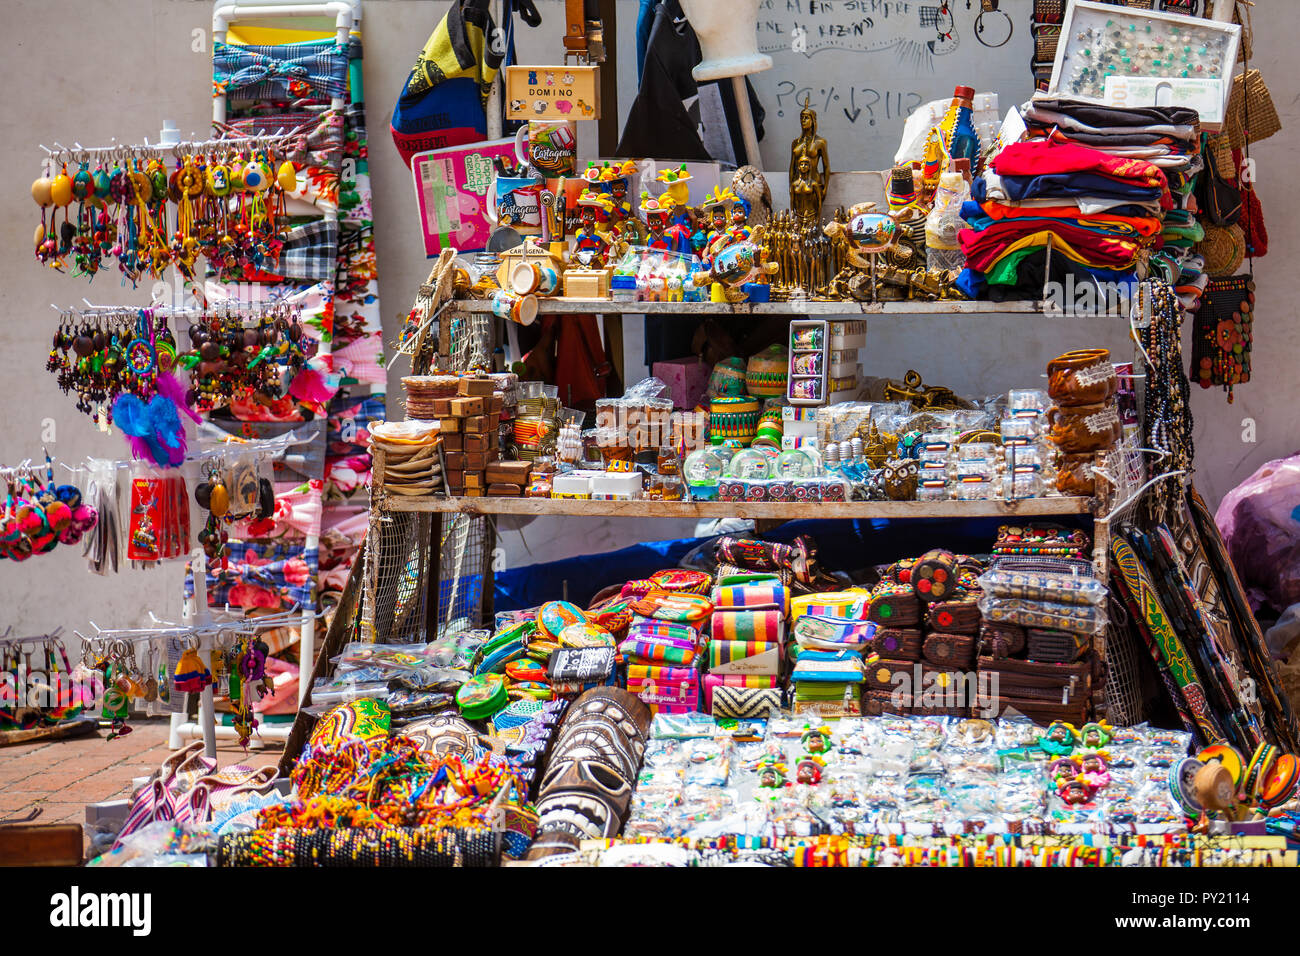 Cartagena De Indias Colombia August 2018 Street Sell Of